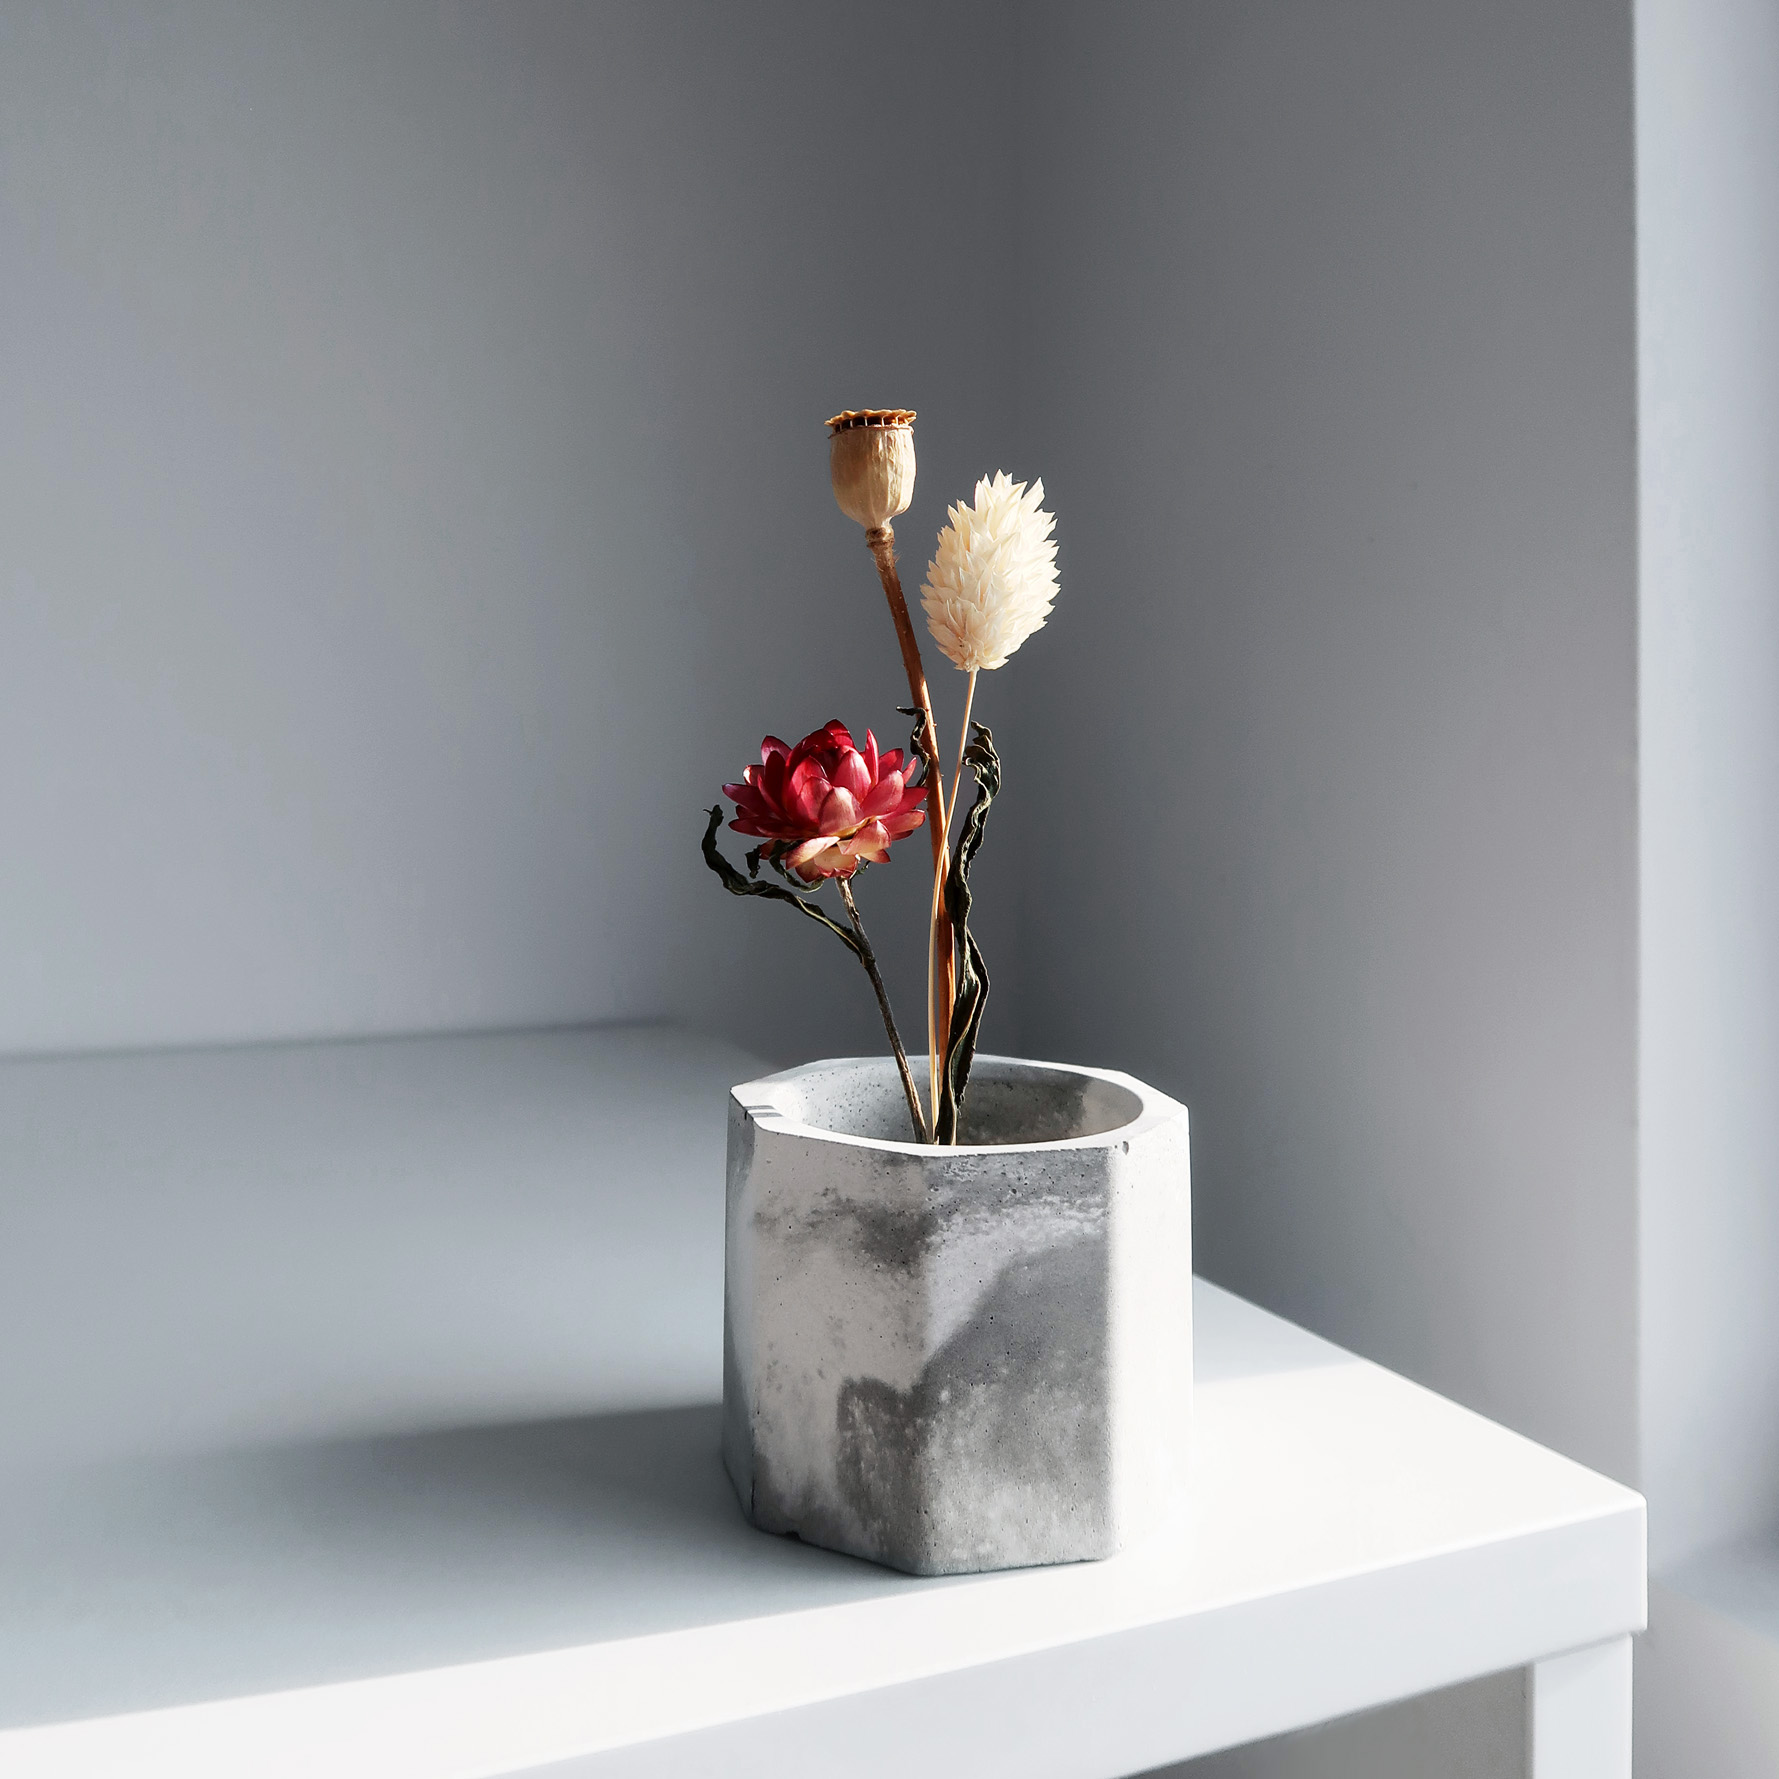 CARRARA 卡拉拉多用途水泥黃銅座盆器 / Marbling concrete candle holder with dried flowers